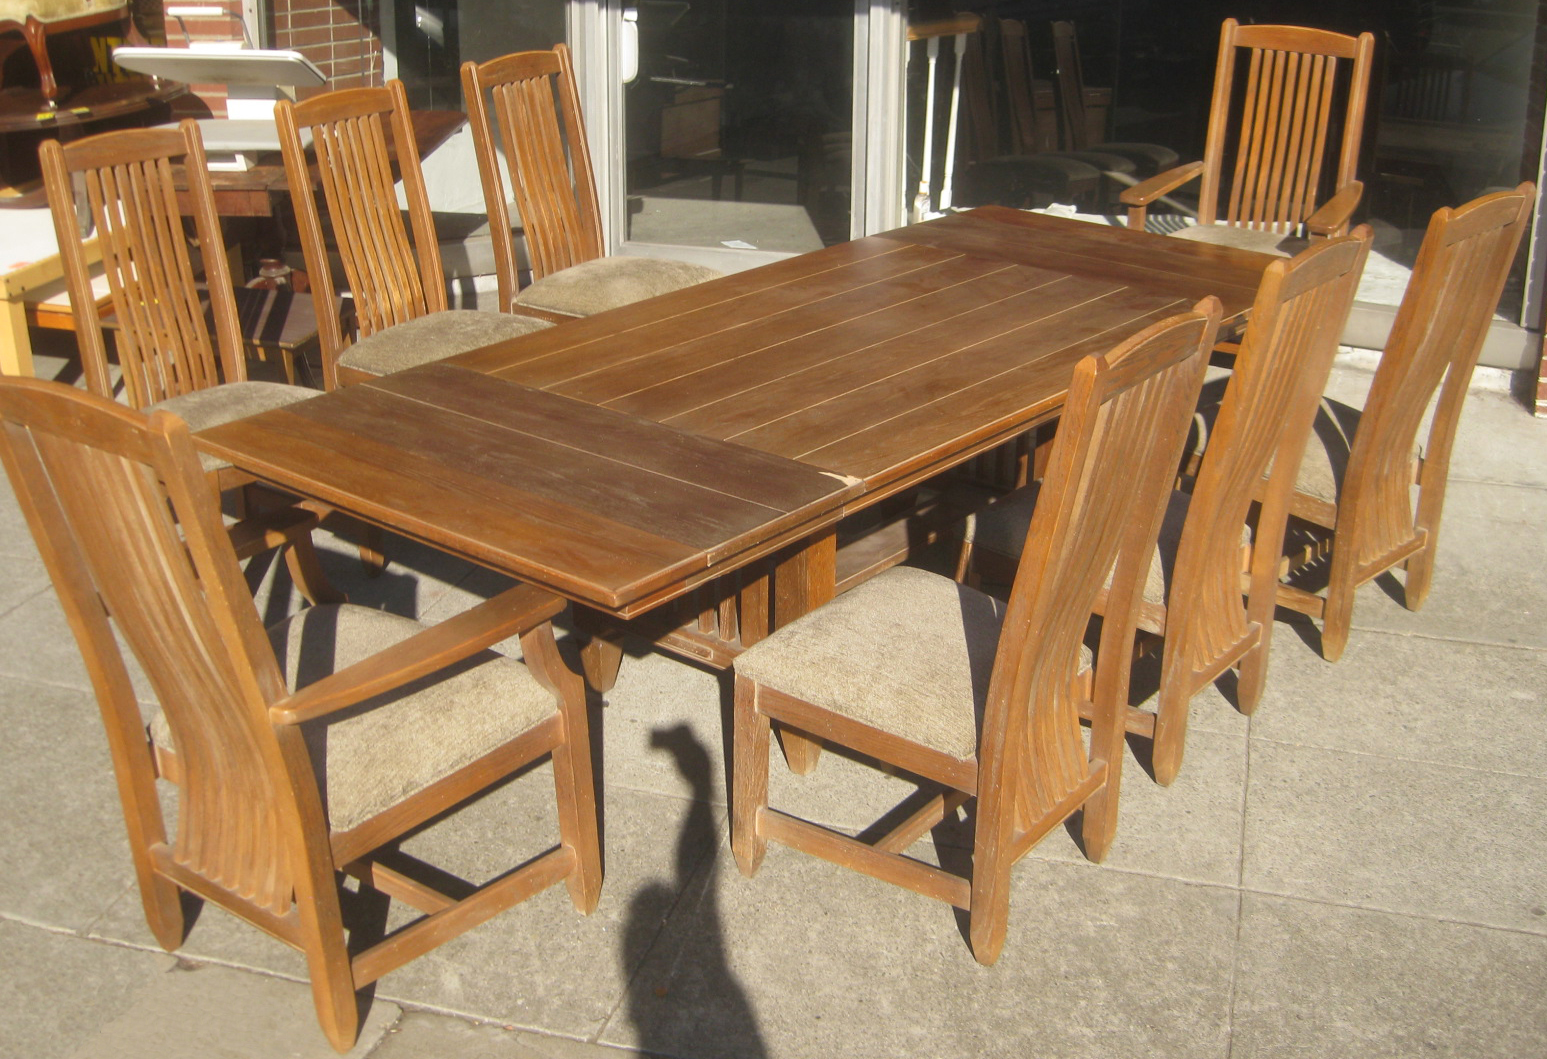 UHURU FURNITURE & COLLECTIBLES: SOLD - Ethan Allen Dining Table ...